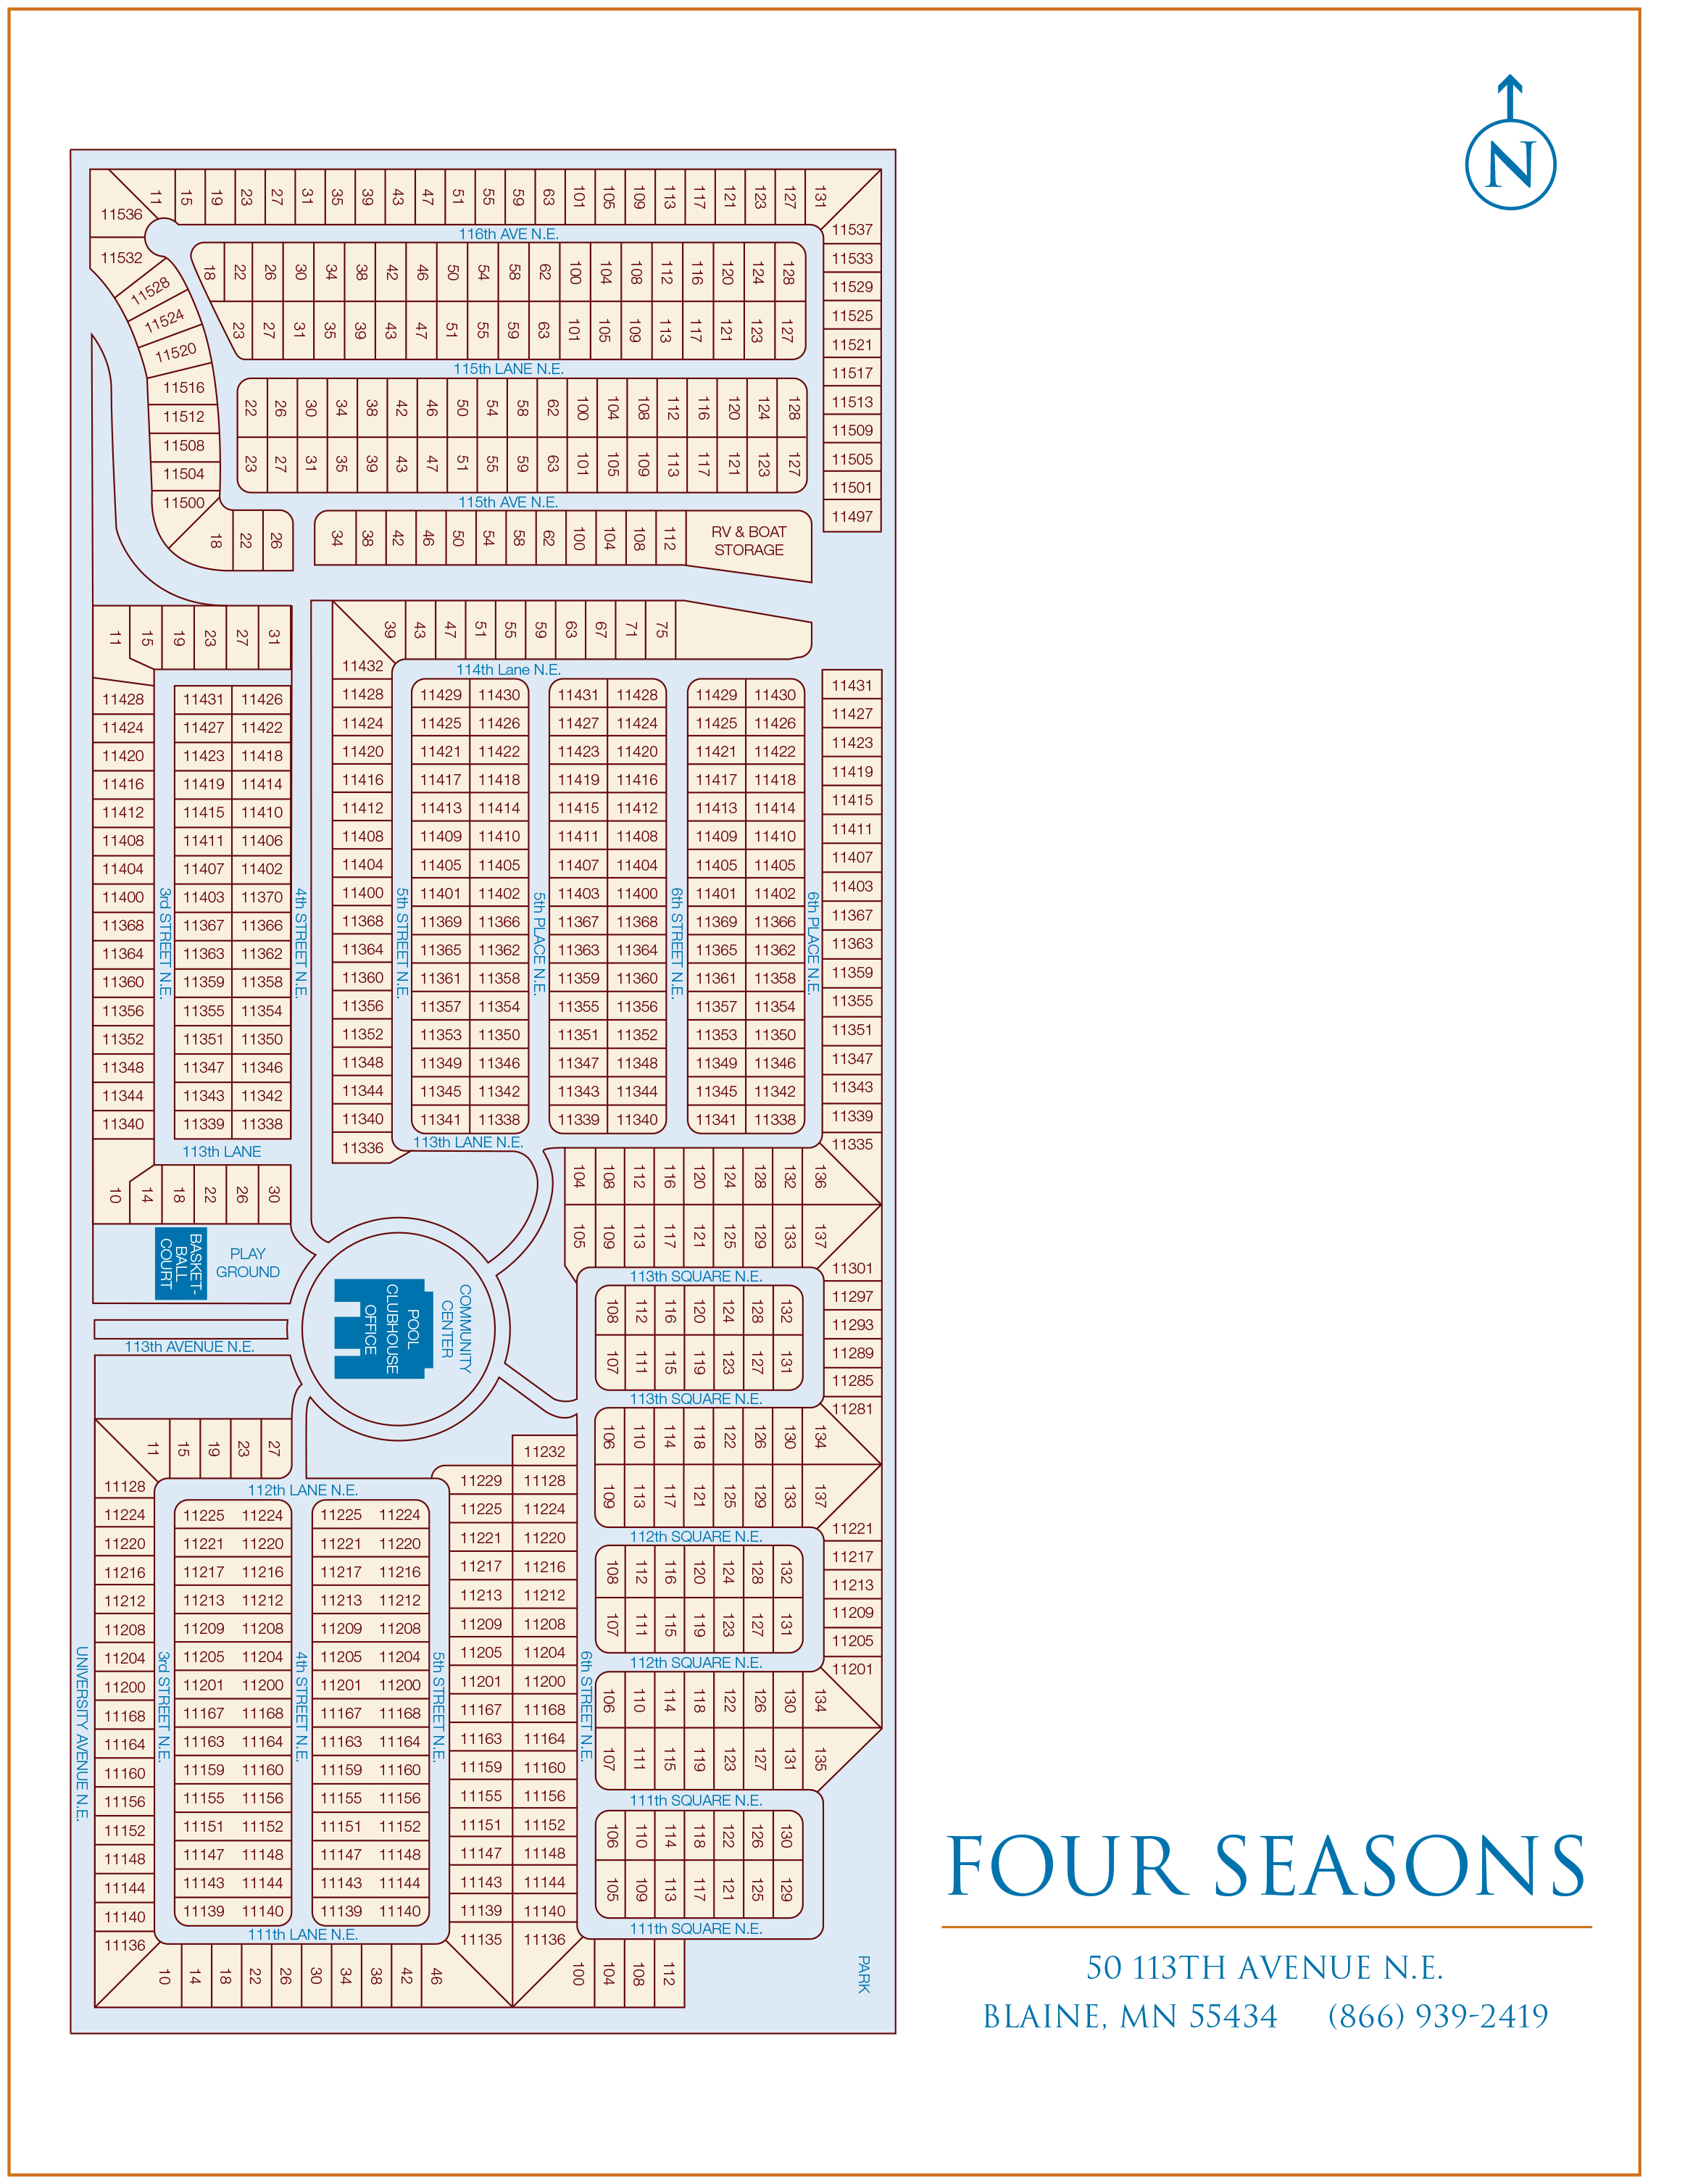 Park of Four Seasons site map